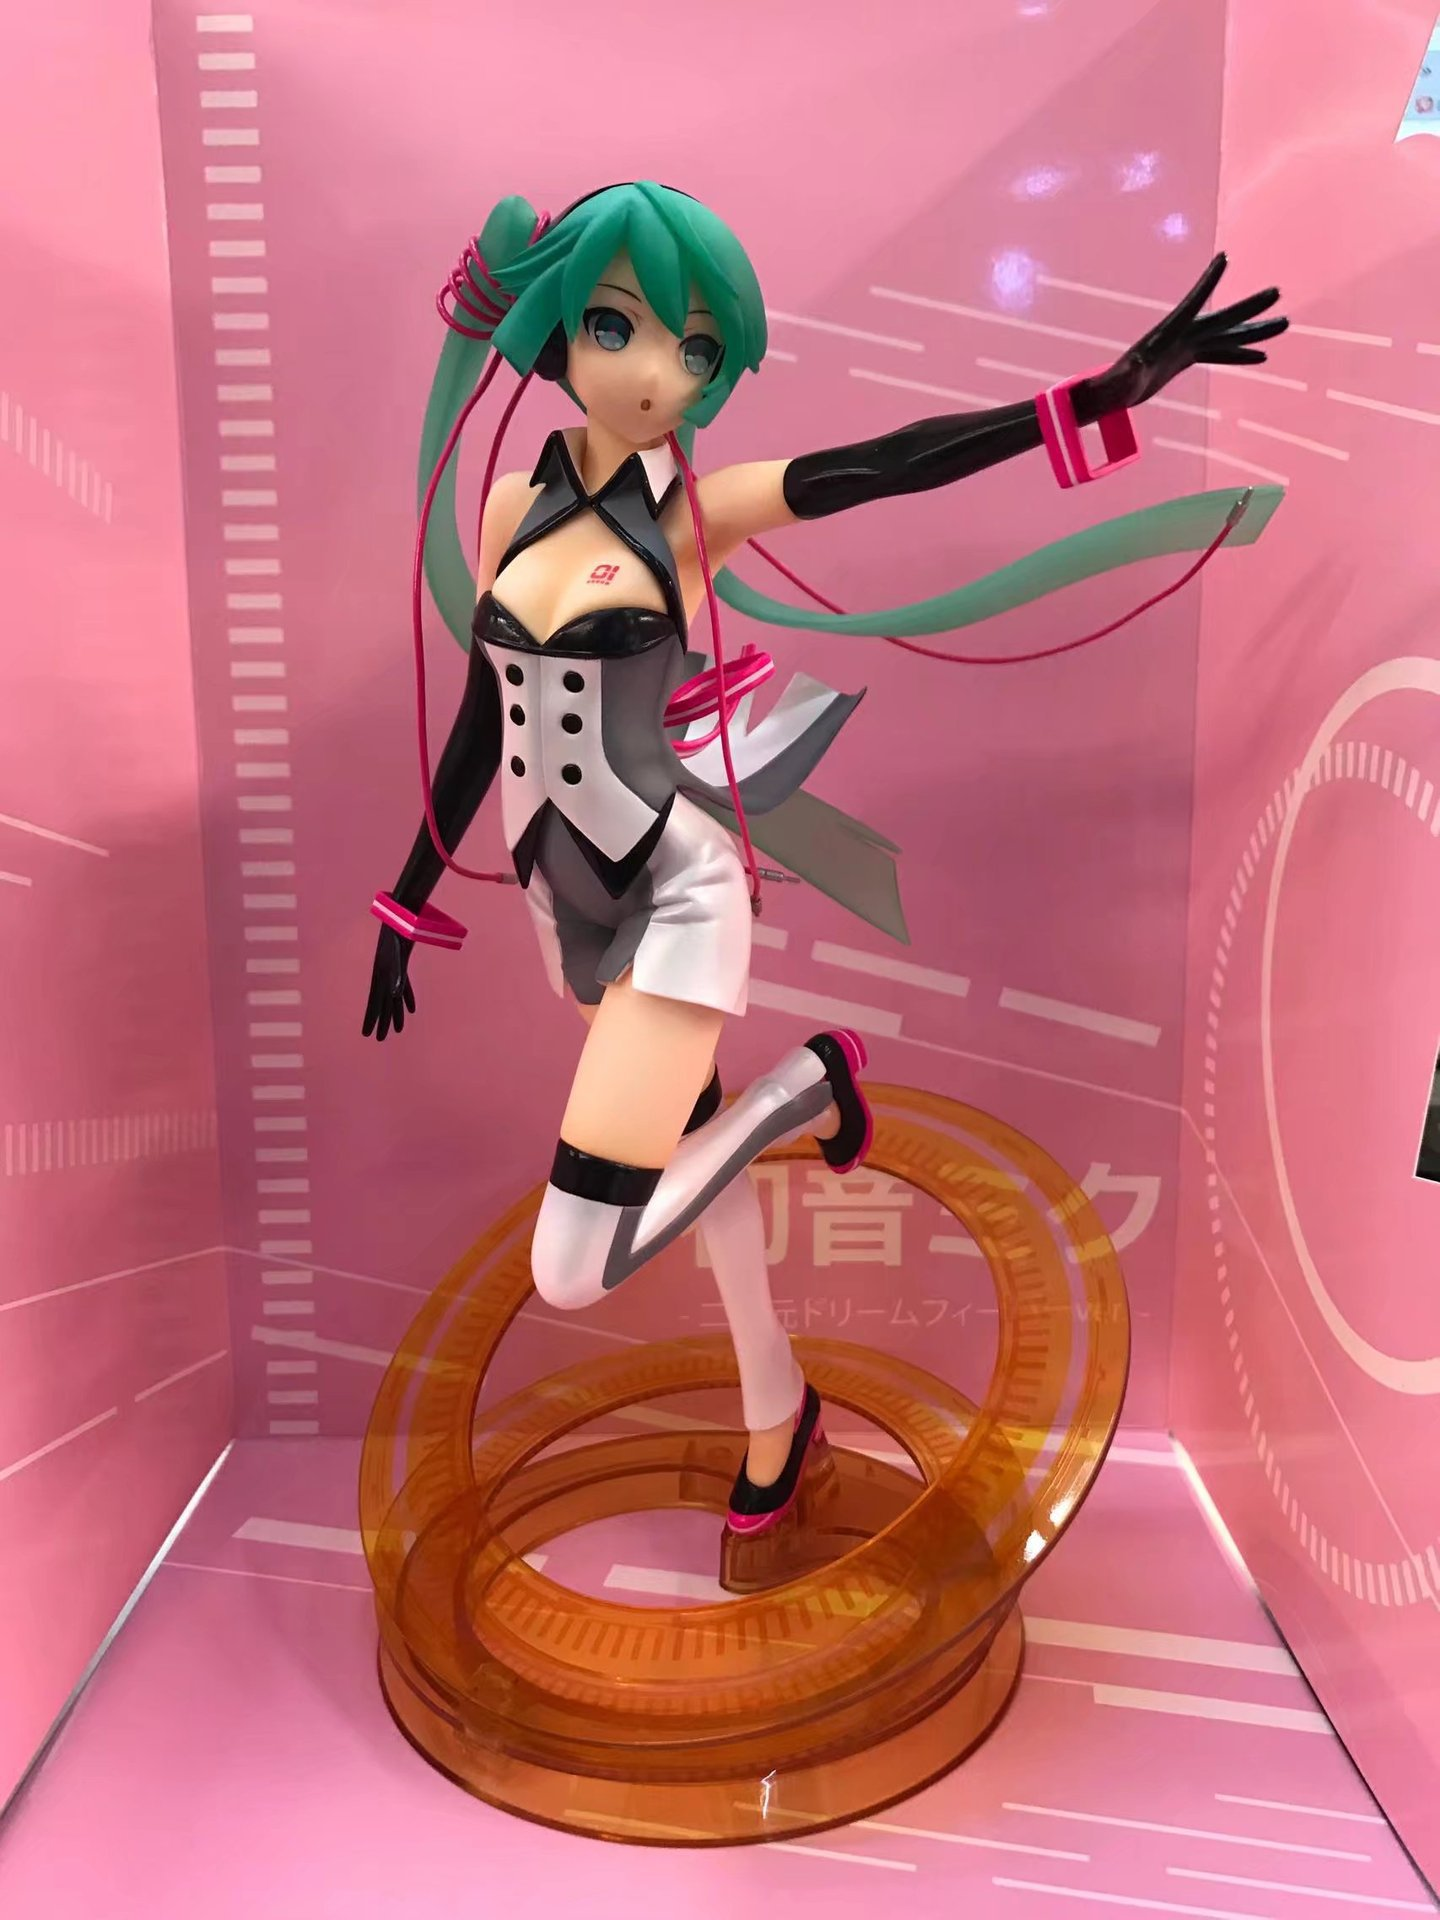 Anime Vocaloid Hatsune Miku Nijigen Dream Fever Ver. 1/7 Scale Complete PVC Action Figure Collectible Model Toy 21cm KT3807 shfiguarts batman injustice ver pvc action figure collectible model toy 16cm kt1840